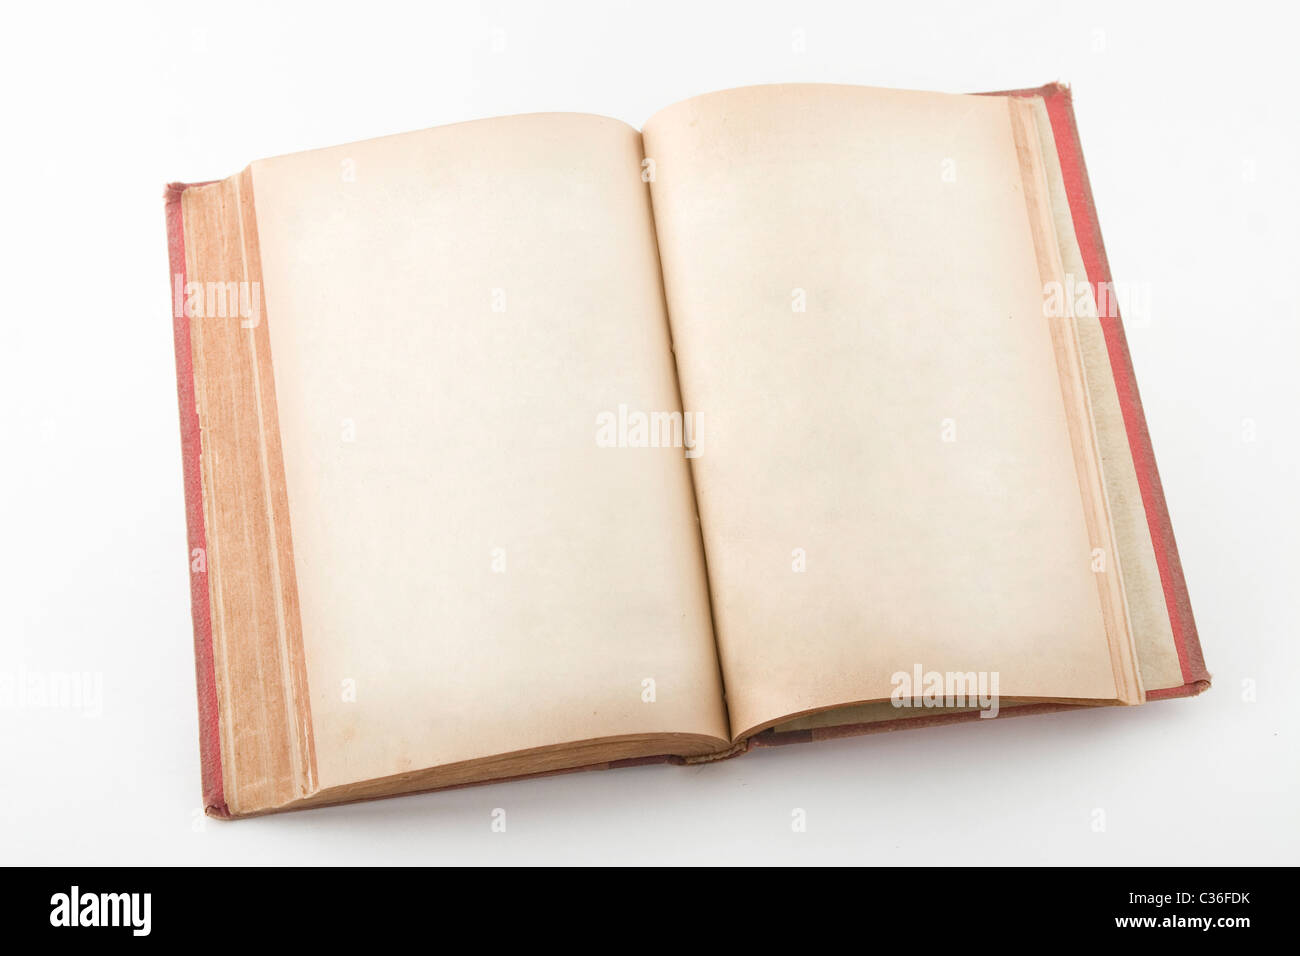 front view of open book with blank pages - Stock Image